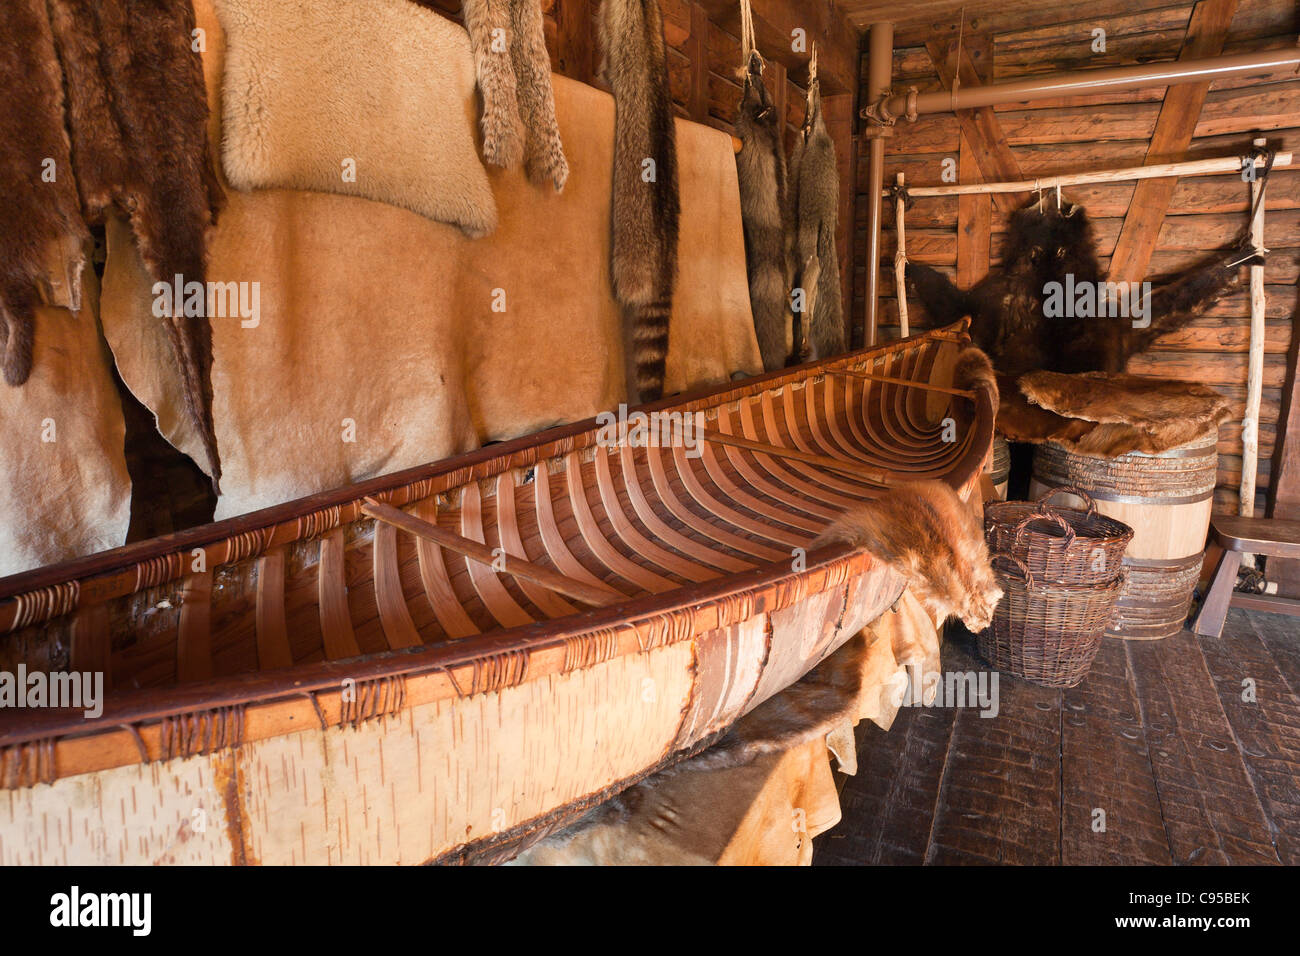 Canoe and Furs in a storage room at the Port Royal Habitation. The reconstructed Port Royal Habitation built in - Stock Image